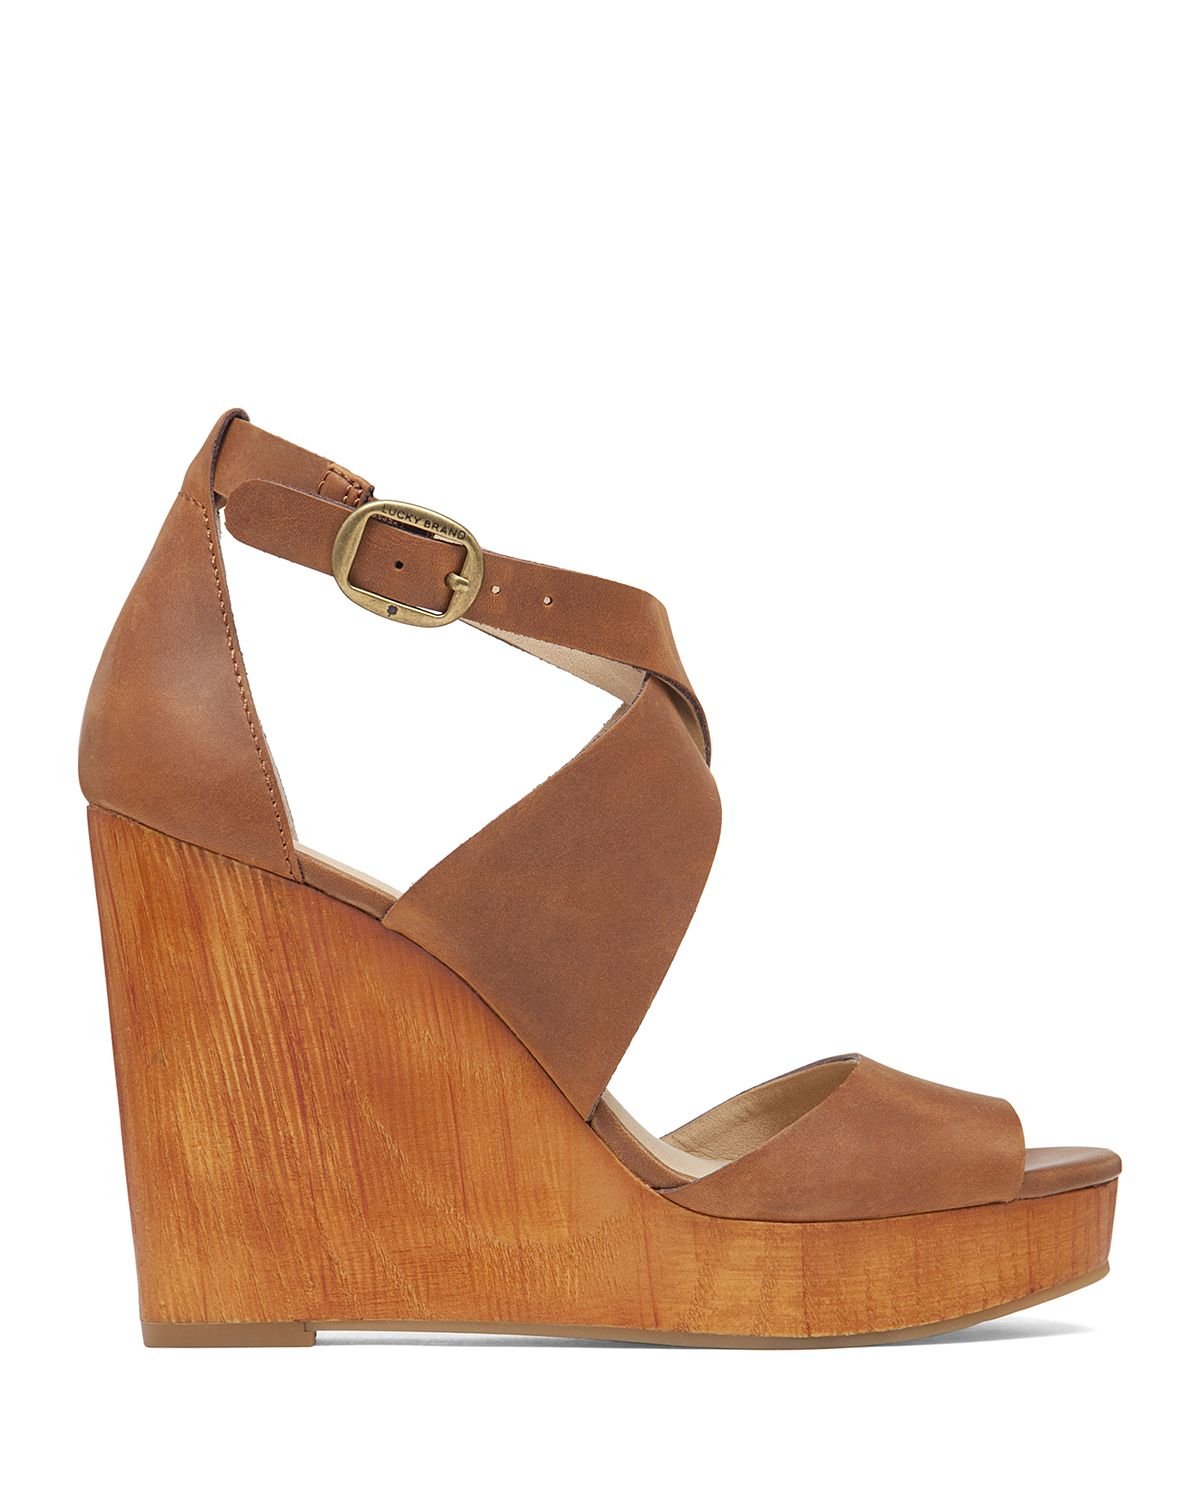 bf92fdd7f Lucky Brand Wedge Sandals - Lyndell in Brown - Lyst